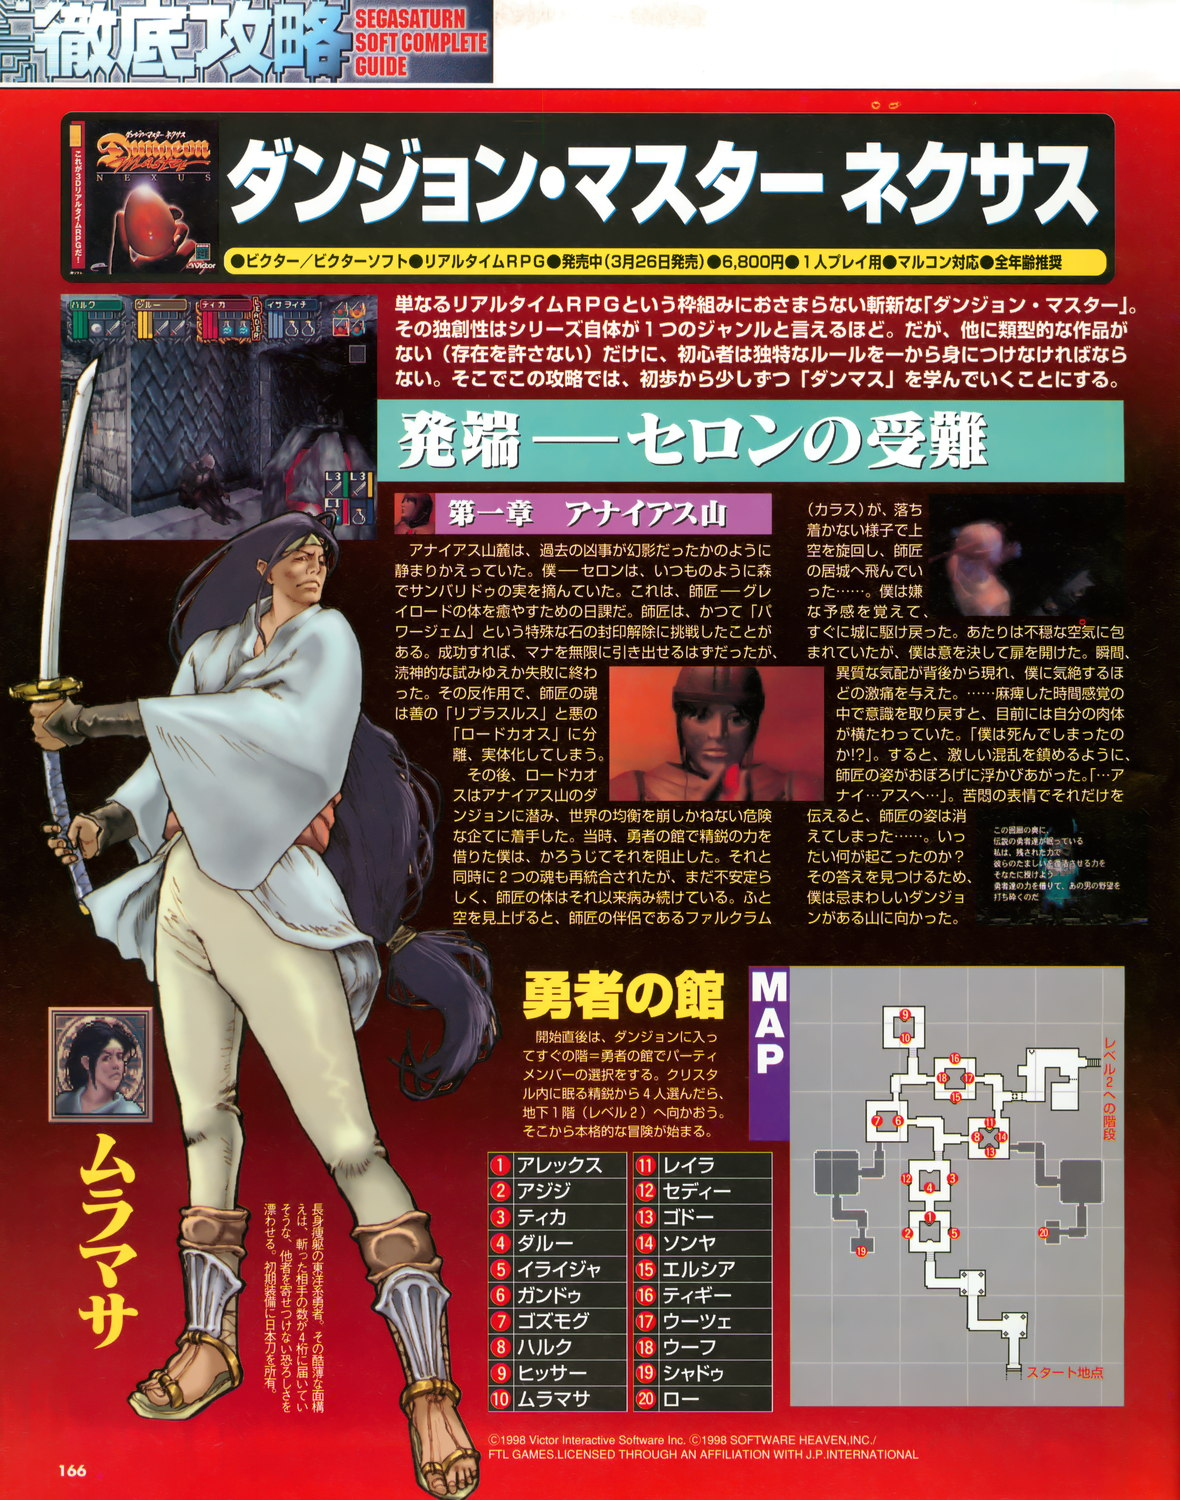 Dungeon Master Nexus Guide published in Japanese magazine 'Sega Saturn Magazine', Vol 11 10 April 1998, Page 166